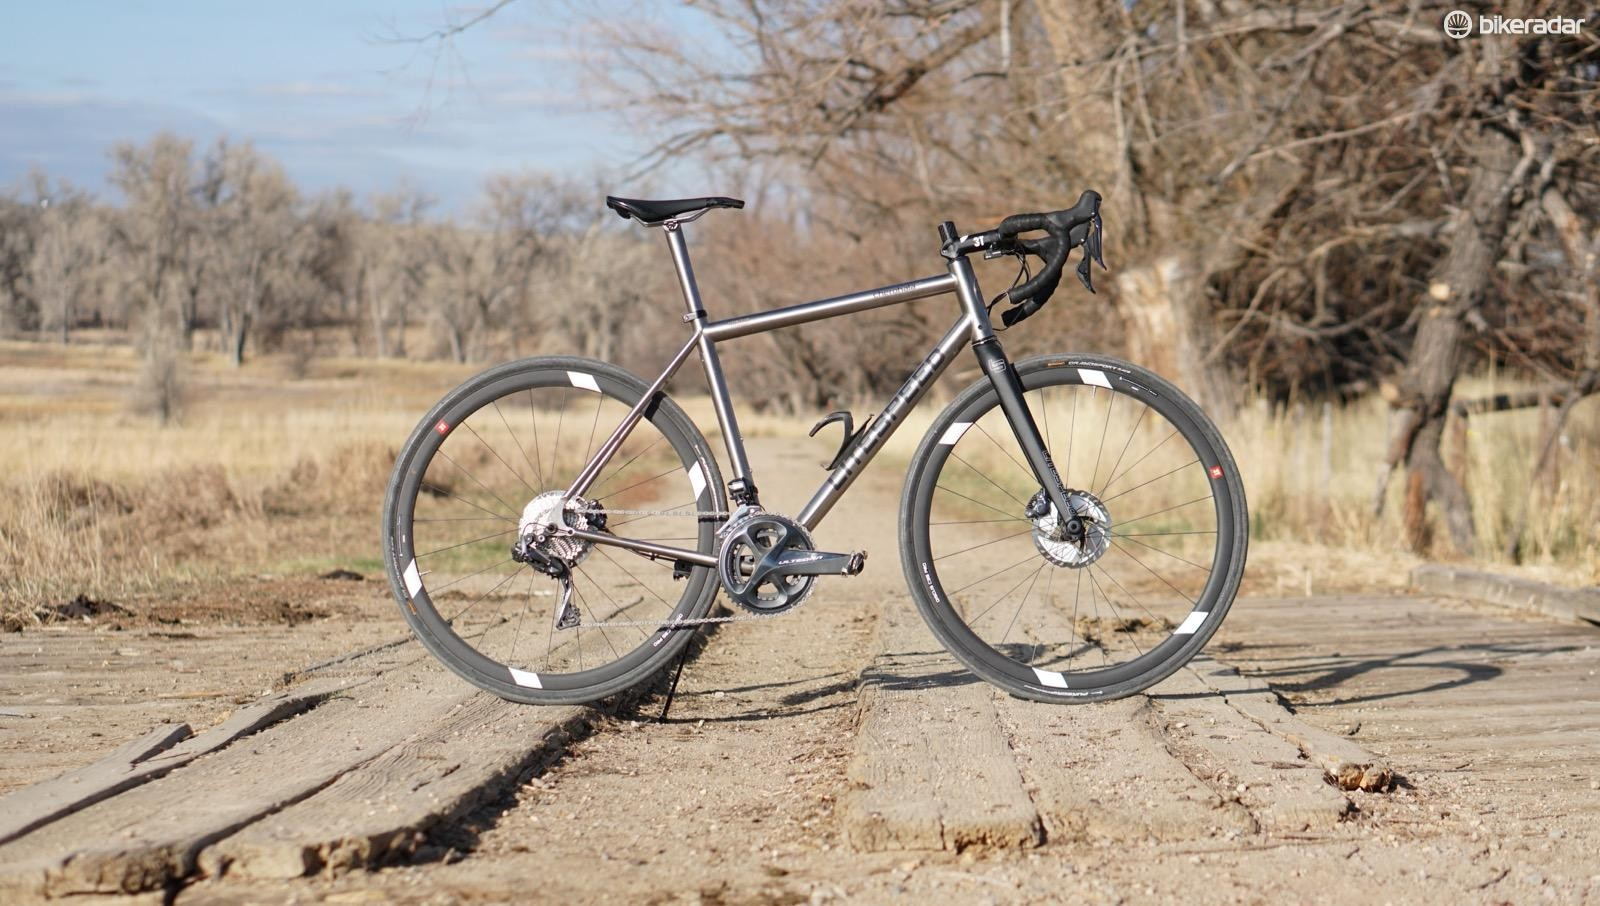 The new Litespeed Cherohala SE mixes endurance geometry with gravel-friendly clearance